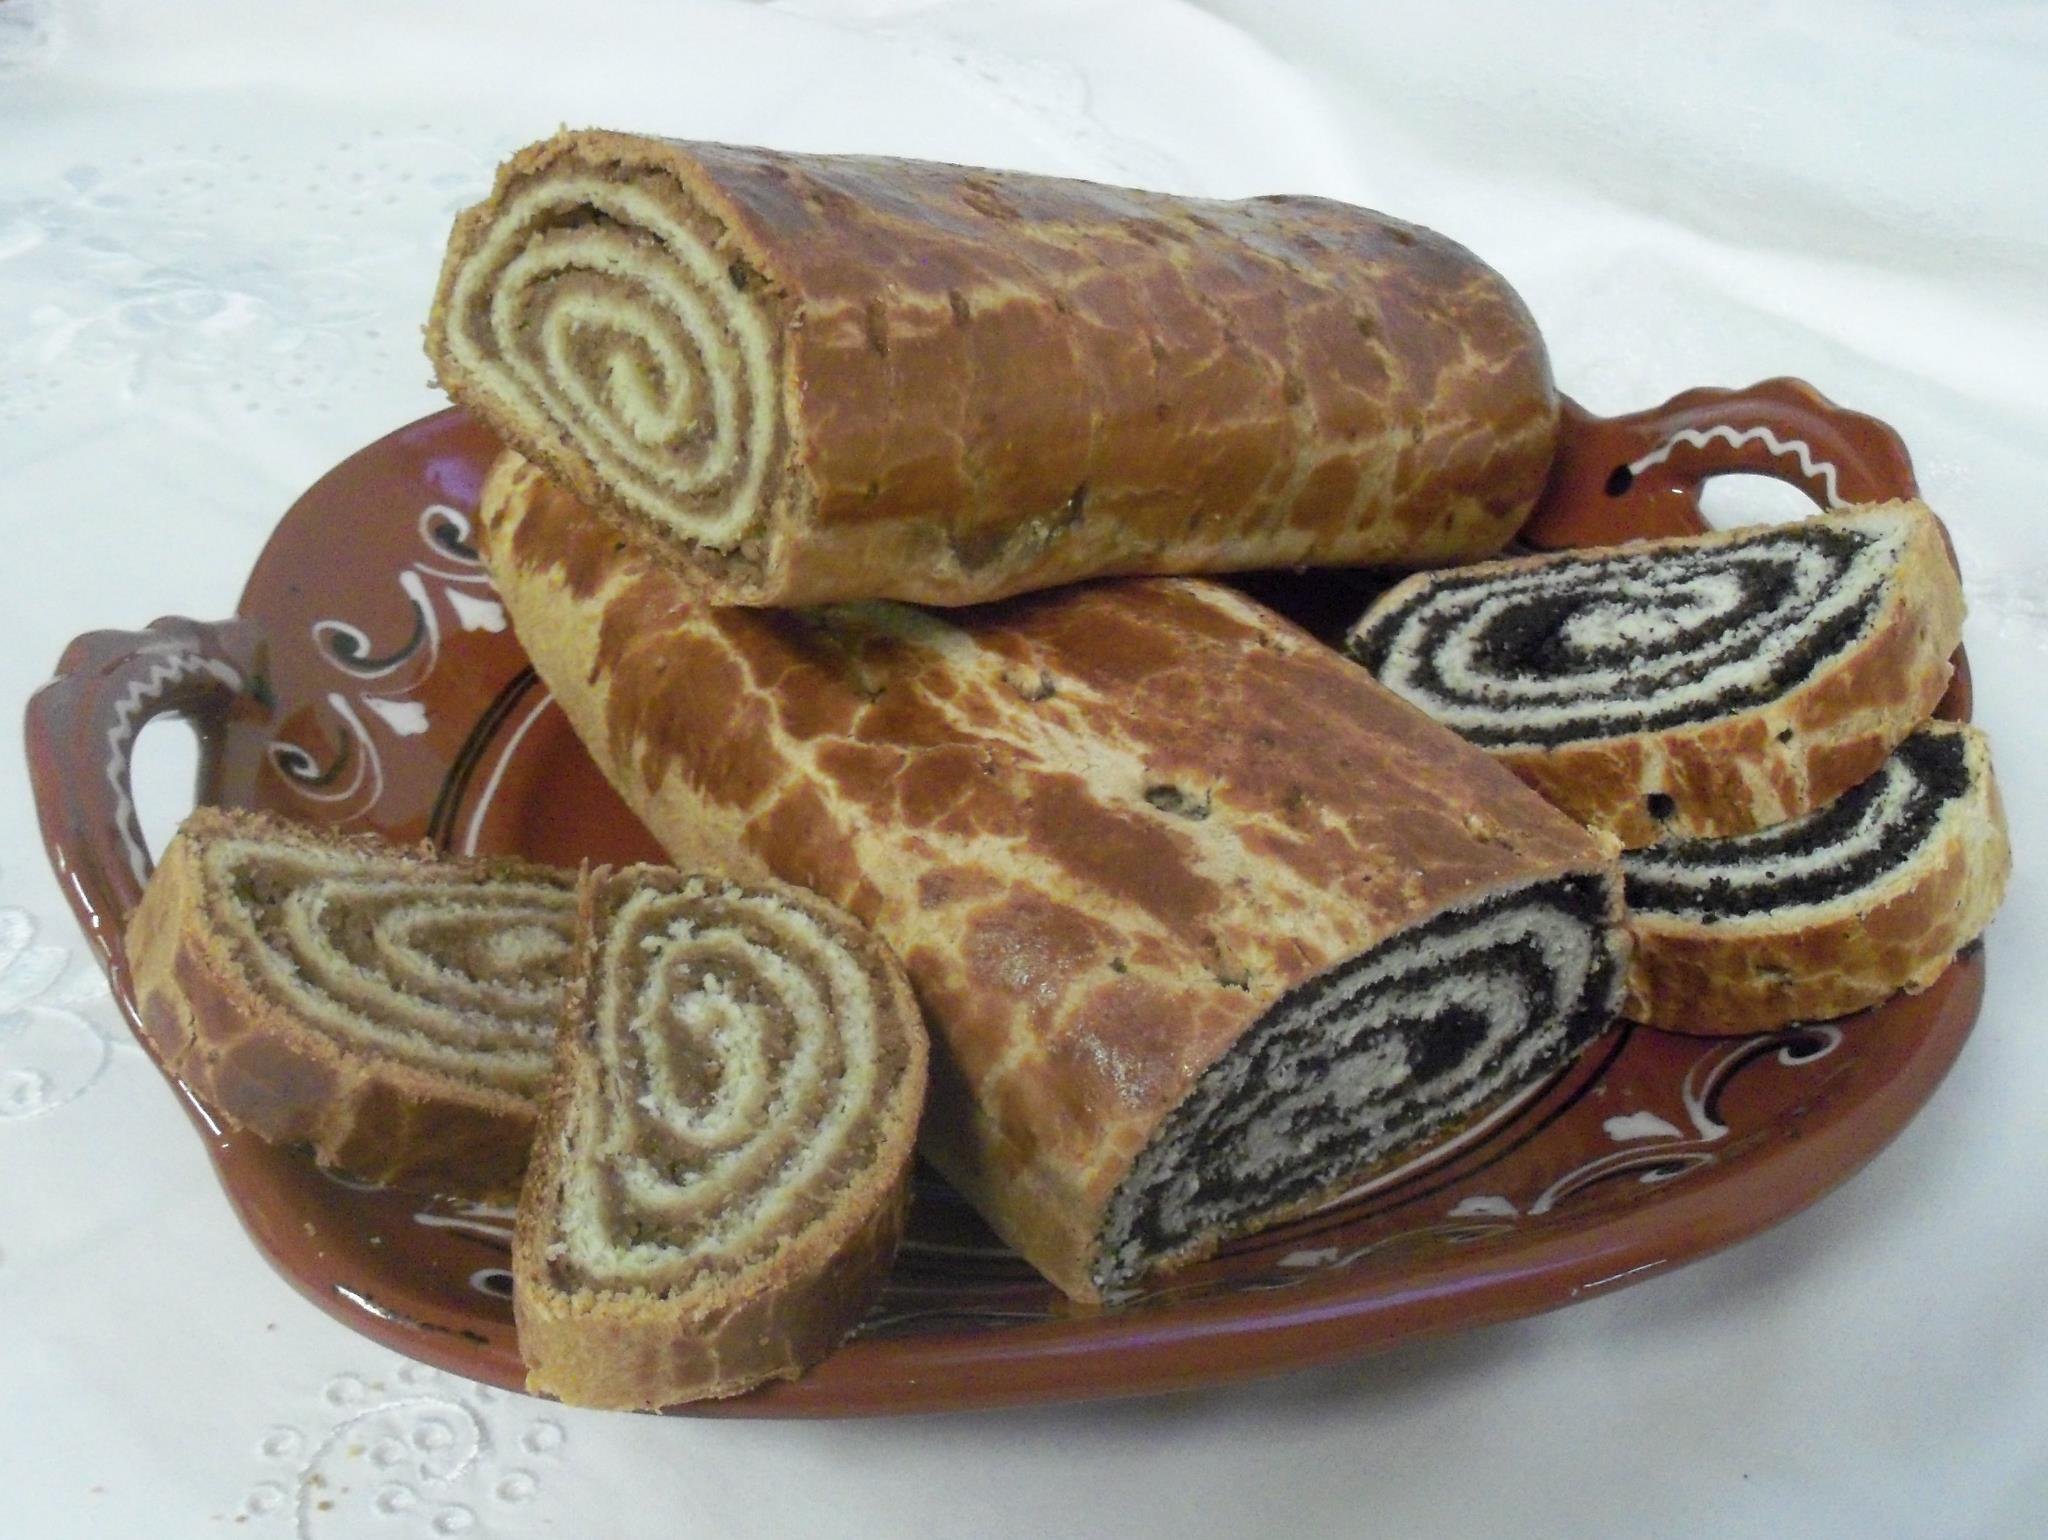 Bejgli húsvétra / Nut and poppy seed rolls for Easter